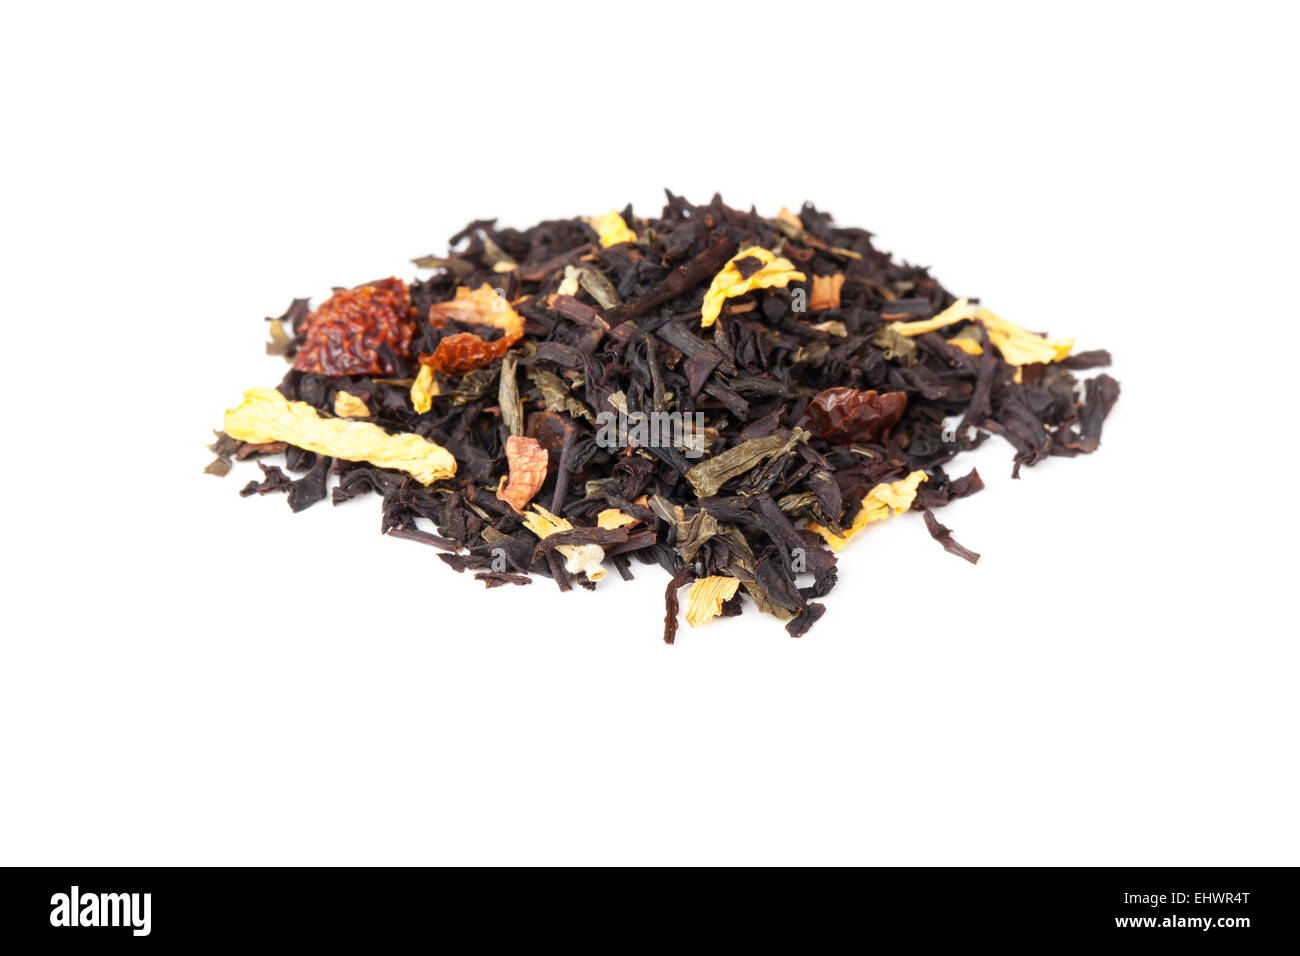 Pile of mixed black and green tea with dry rosehip berries, calendula, sunflower petals  isolated on white background Stock Photo